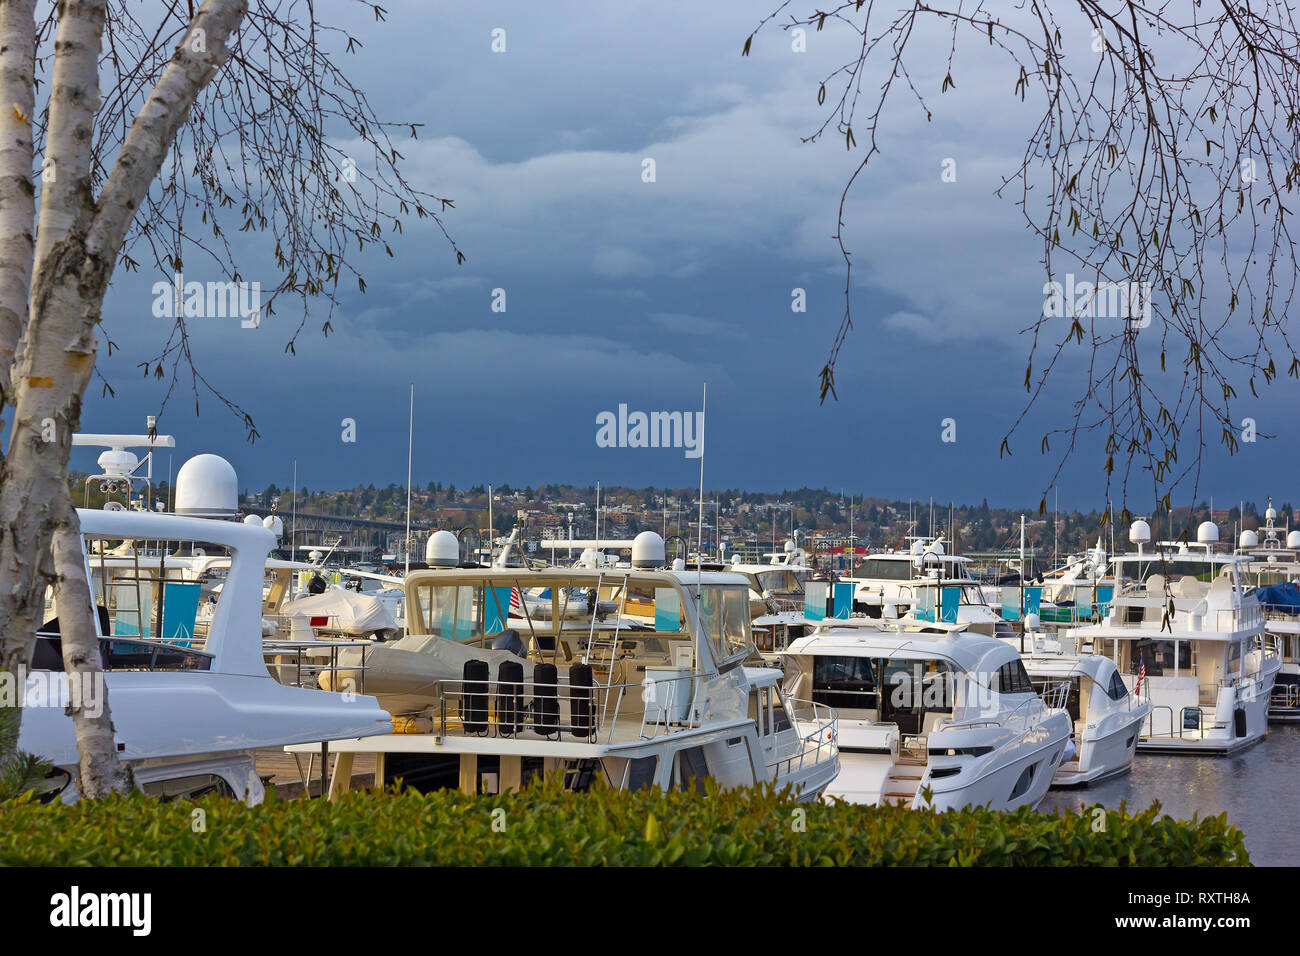 Luxury yachts moored at marina on Lake Union in Seattle.  Yachts that framed by leafless birch trees in spring. - Stock Image